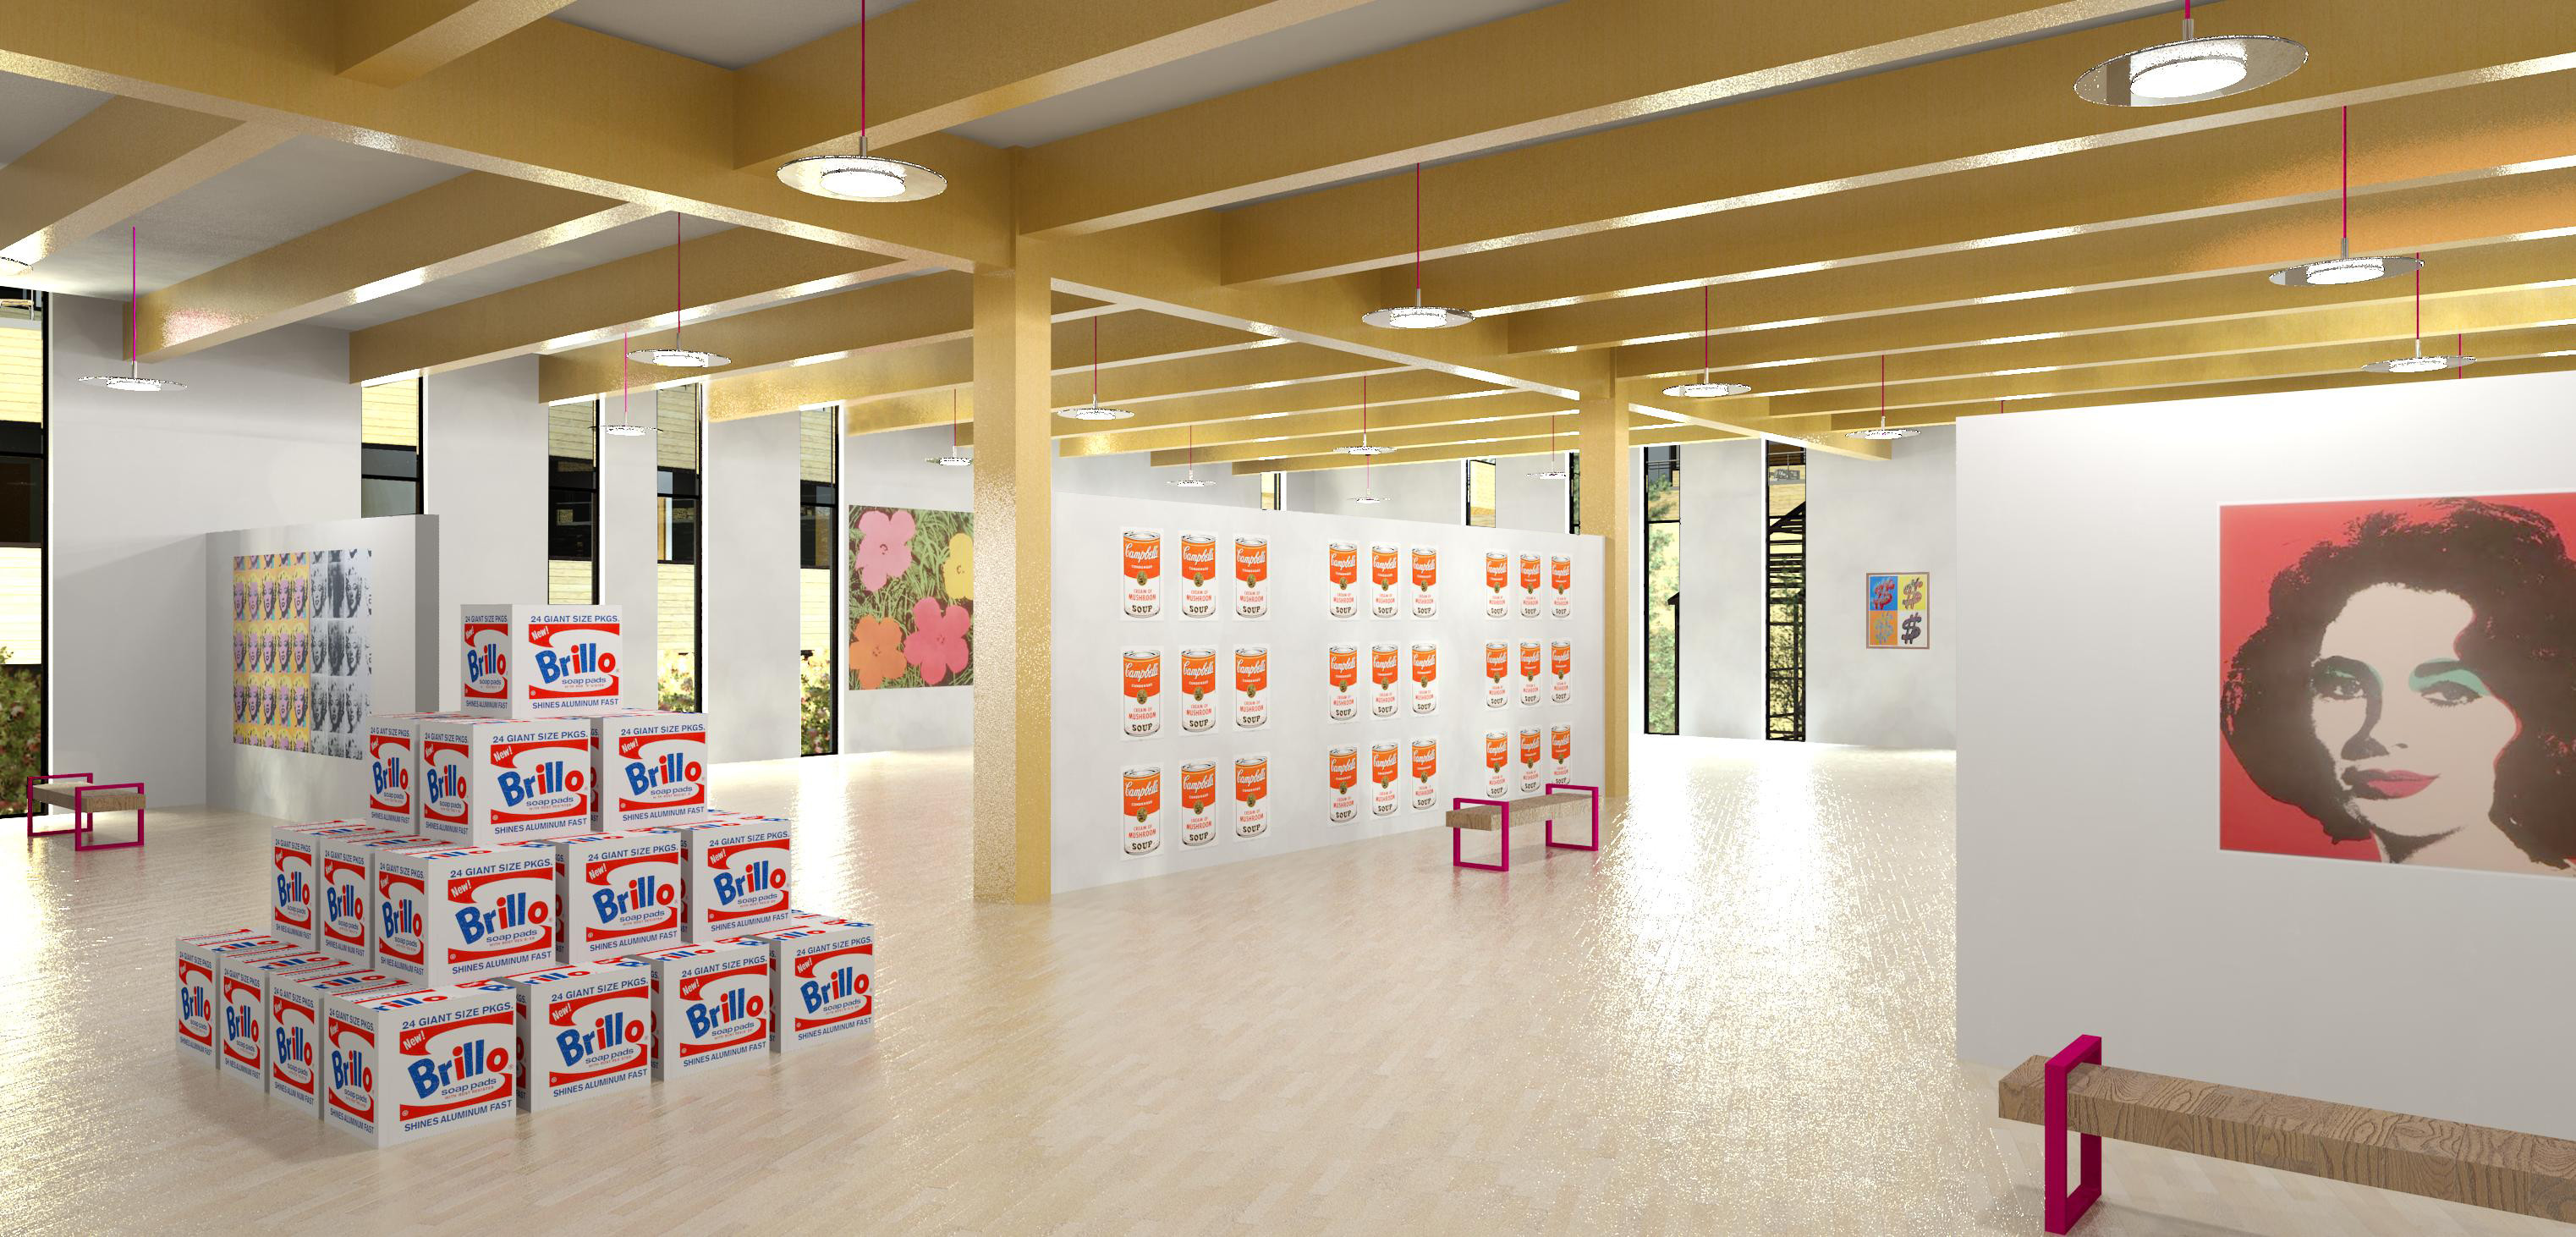 Architectural remdering of an interior space with exposed wood beams, wood flooring, and partial height walls depicting artwork by Andy Warhol